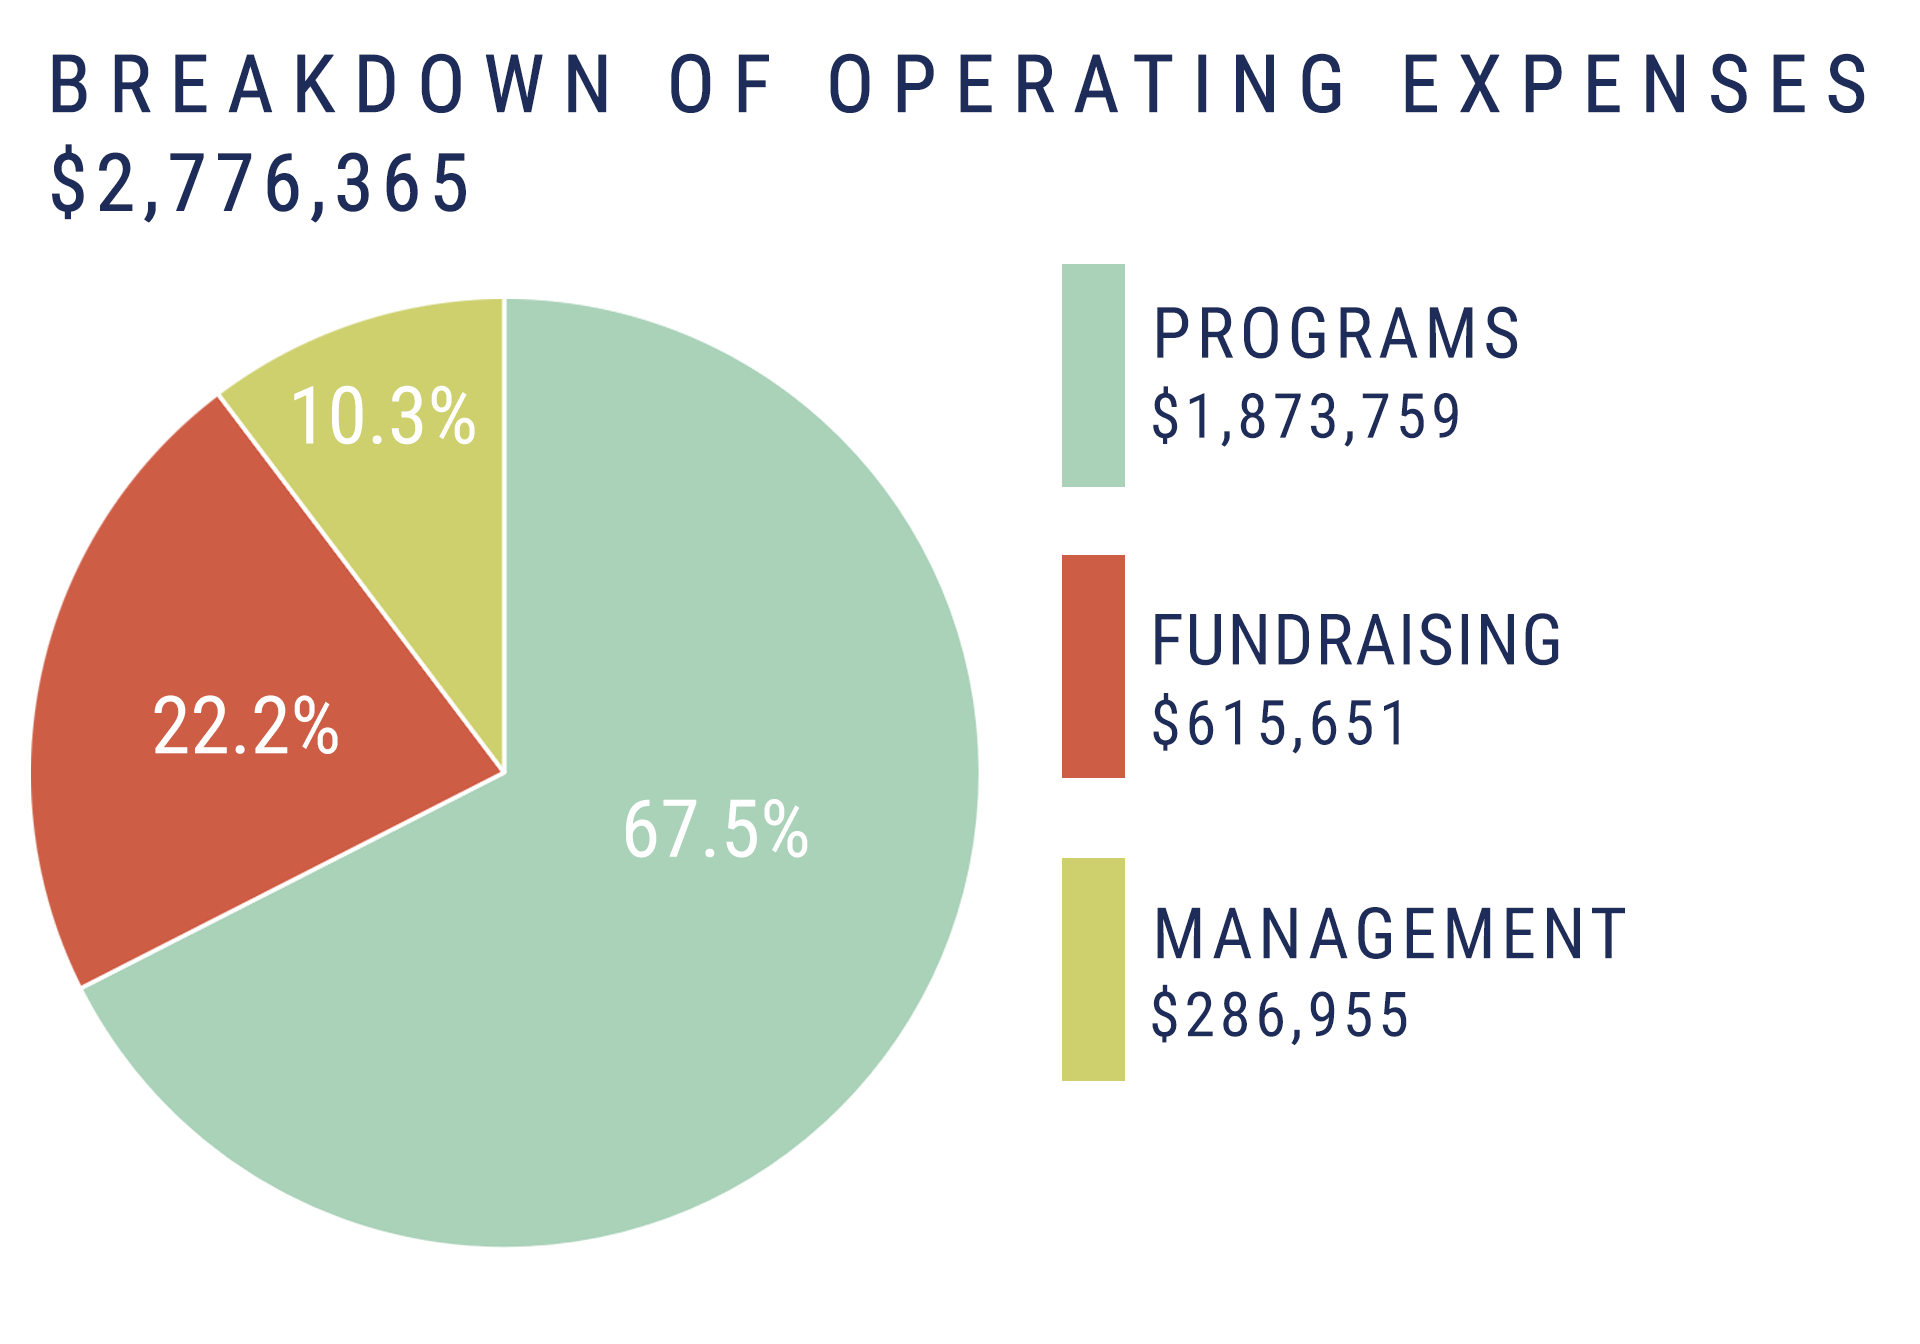 pie-chart_breakdown-of-operating-expenses2020